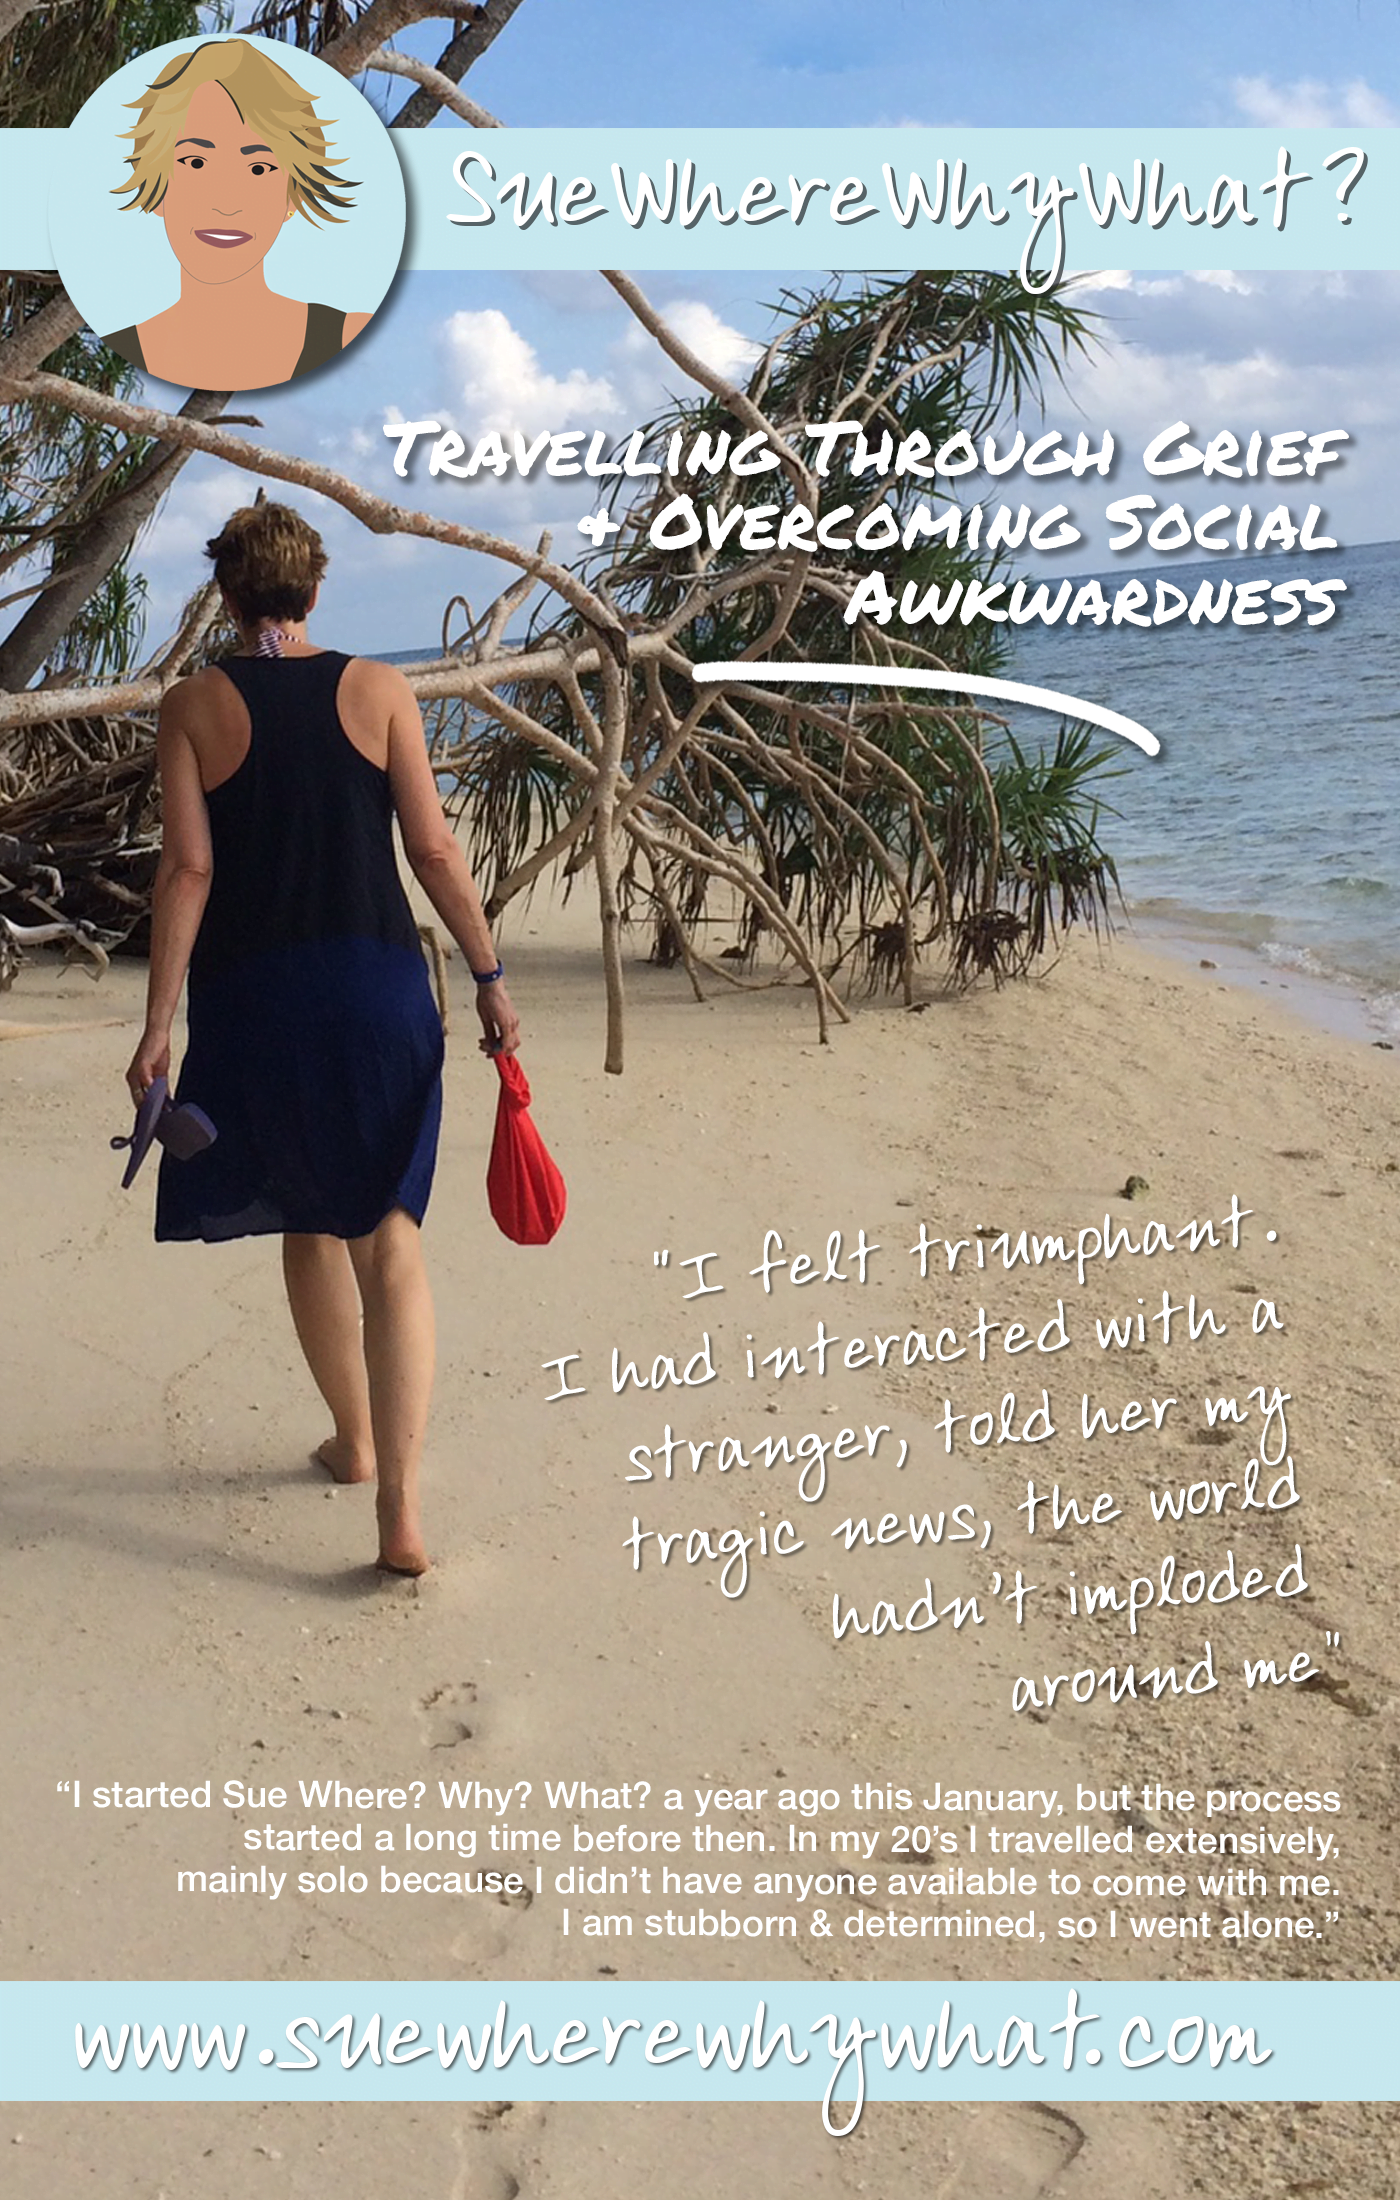 Travelling Through Grief & Overcoming Social Awkwardness. The challenge of travelling solo as a woman while healing from tragedy. How did I use my passion for travel to create distractions & help me grieve? Overcoming the fear of social interactions while on the road.